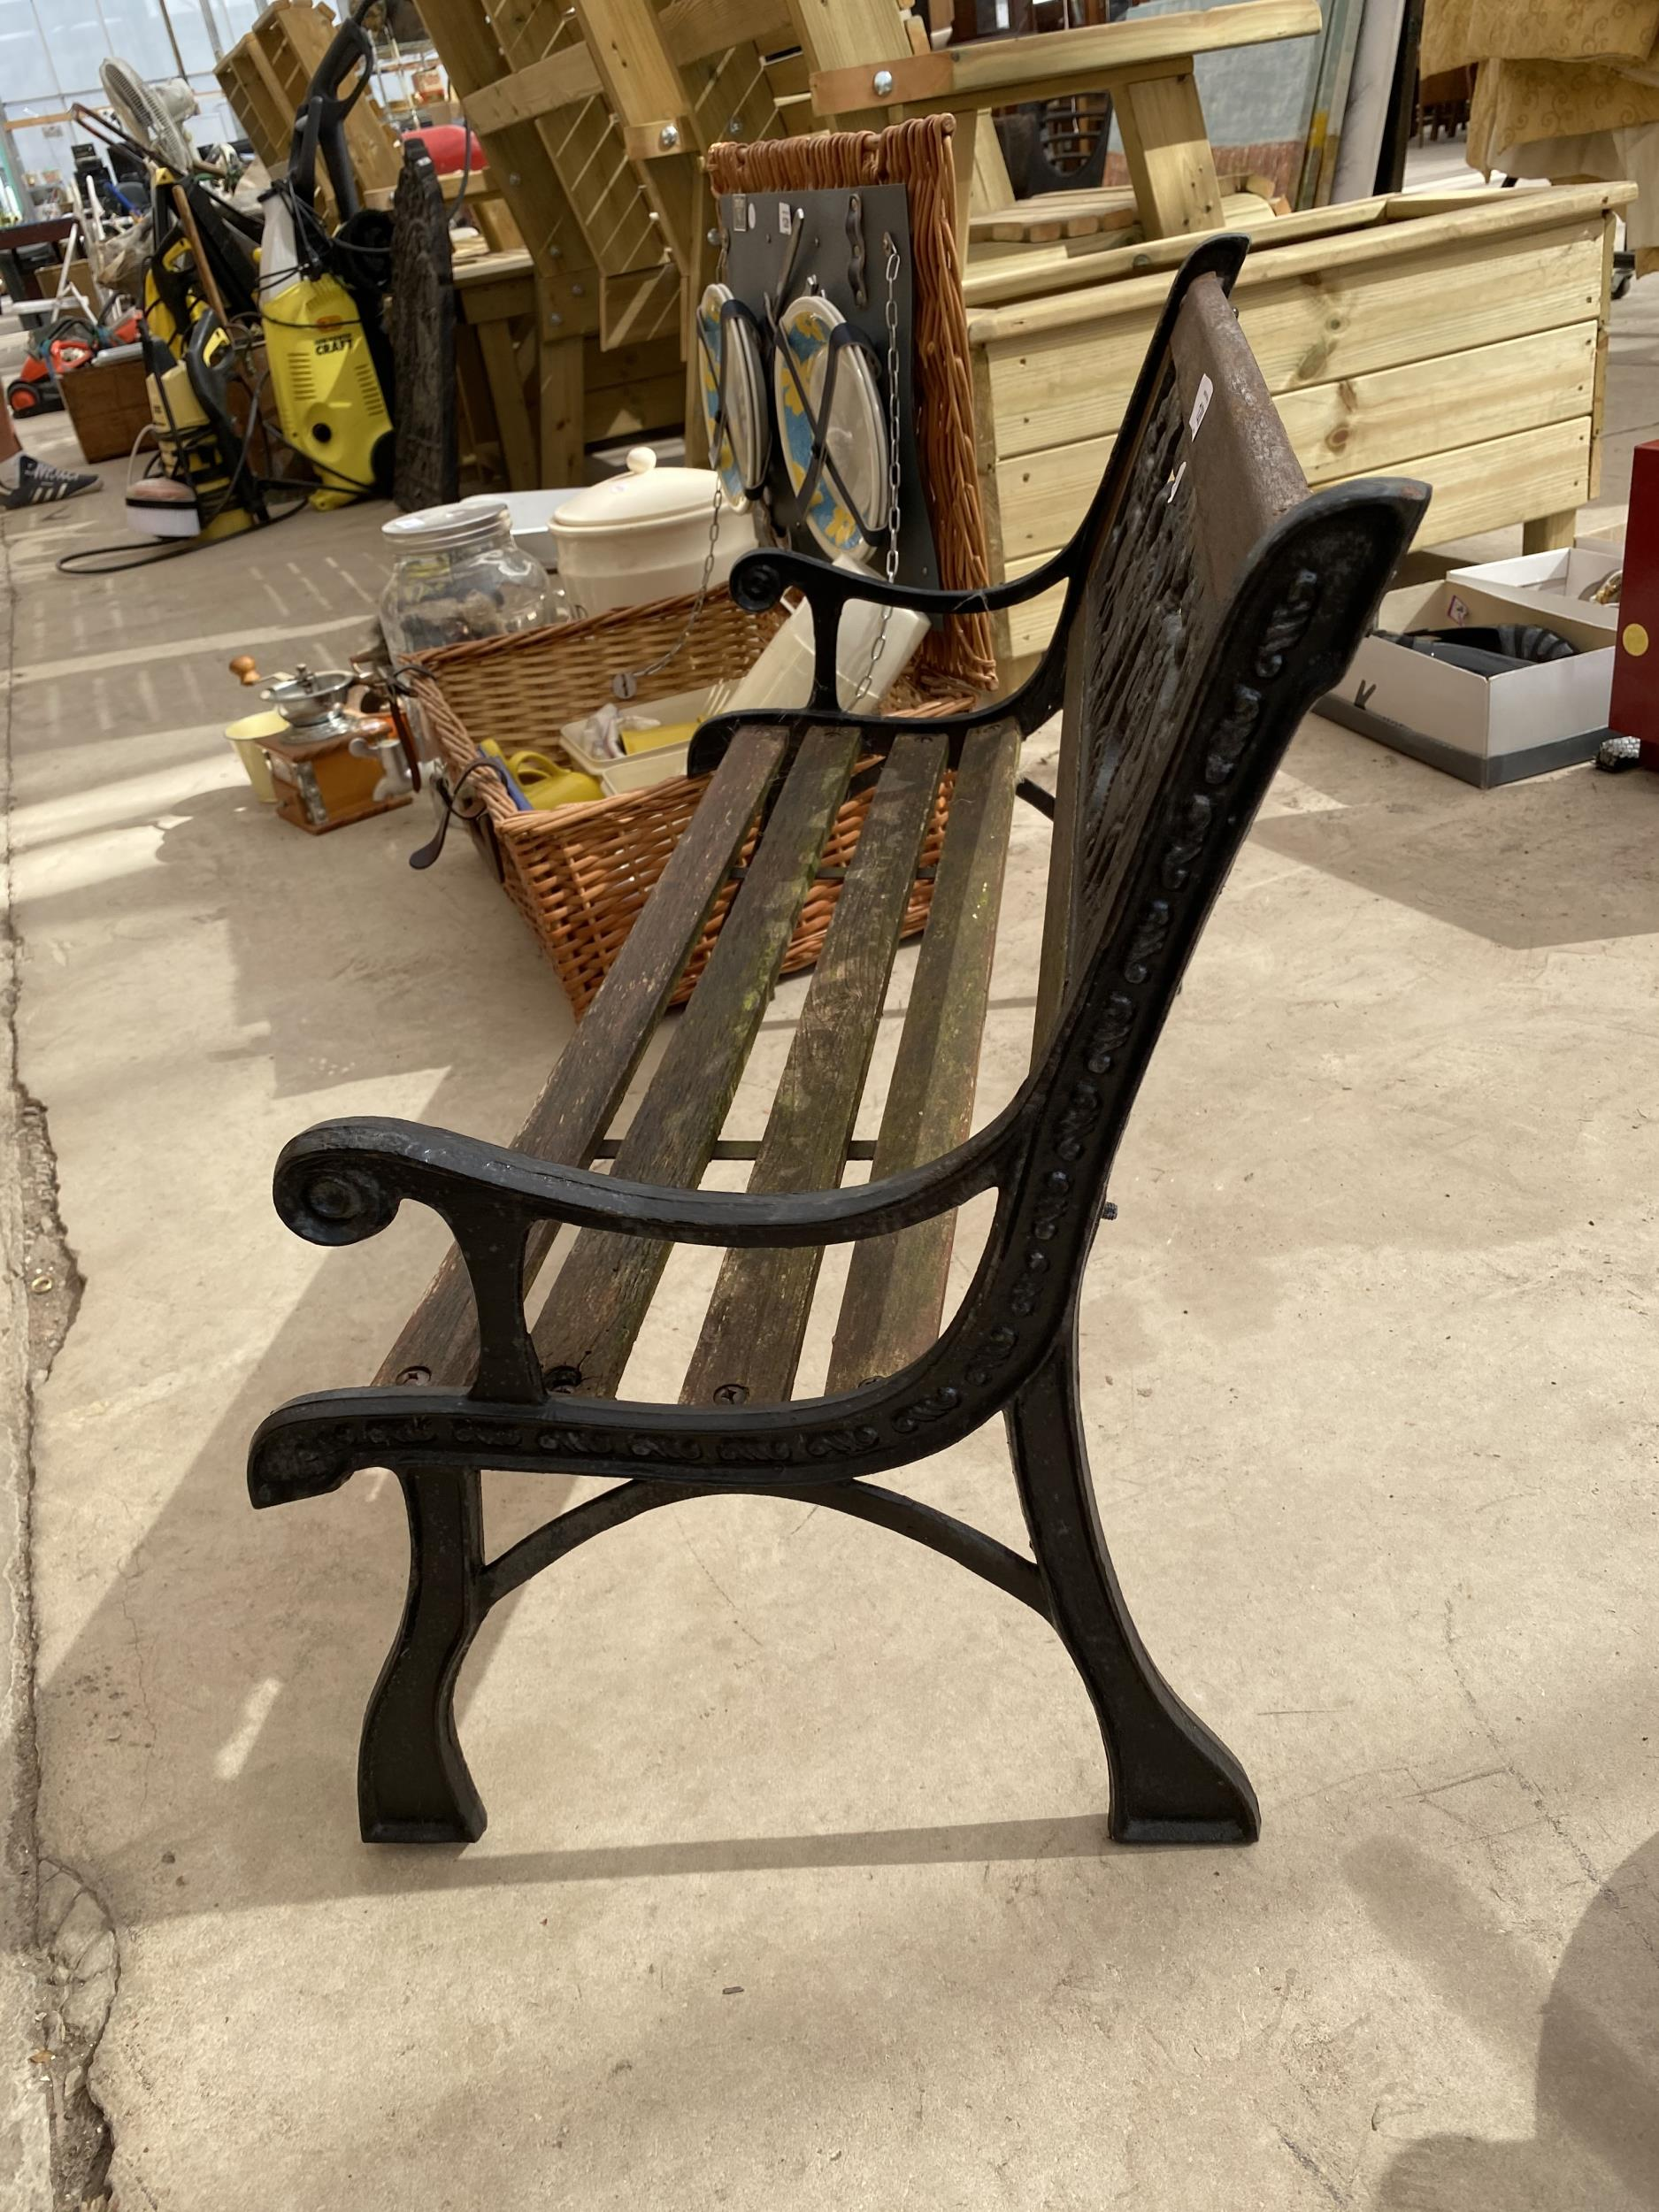 A SMALL CHILDRENS GARDEN BENCH WITH CAST BENCH ENDS AND A CAST BACK DEPICTING A SAFARI SCENE - Image 3 of 3